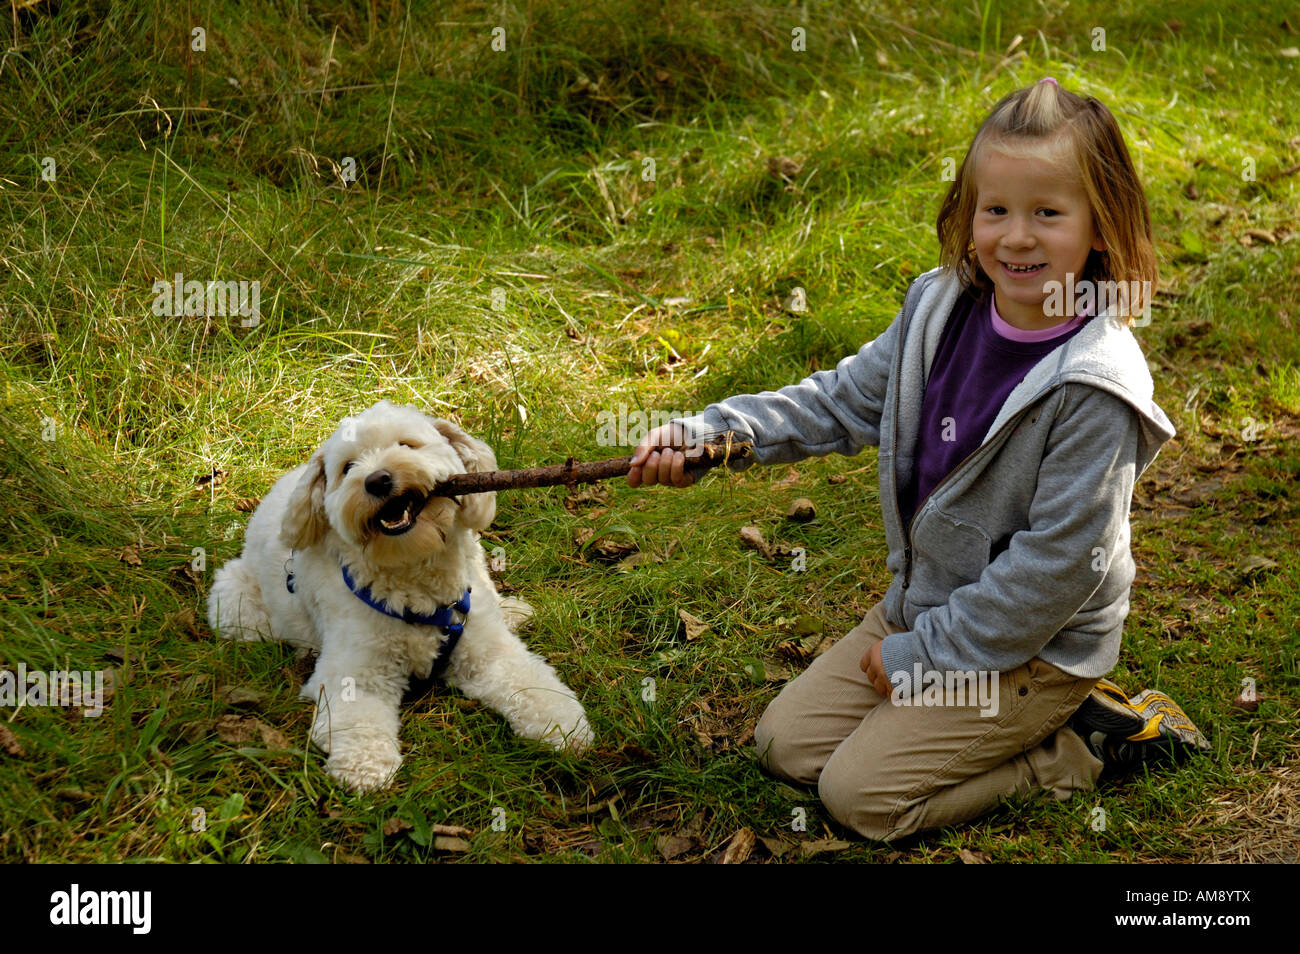 Young girl playing with pet dog outdoors. - Stock Image